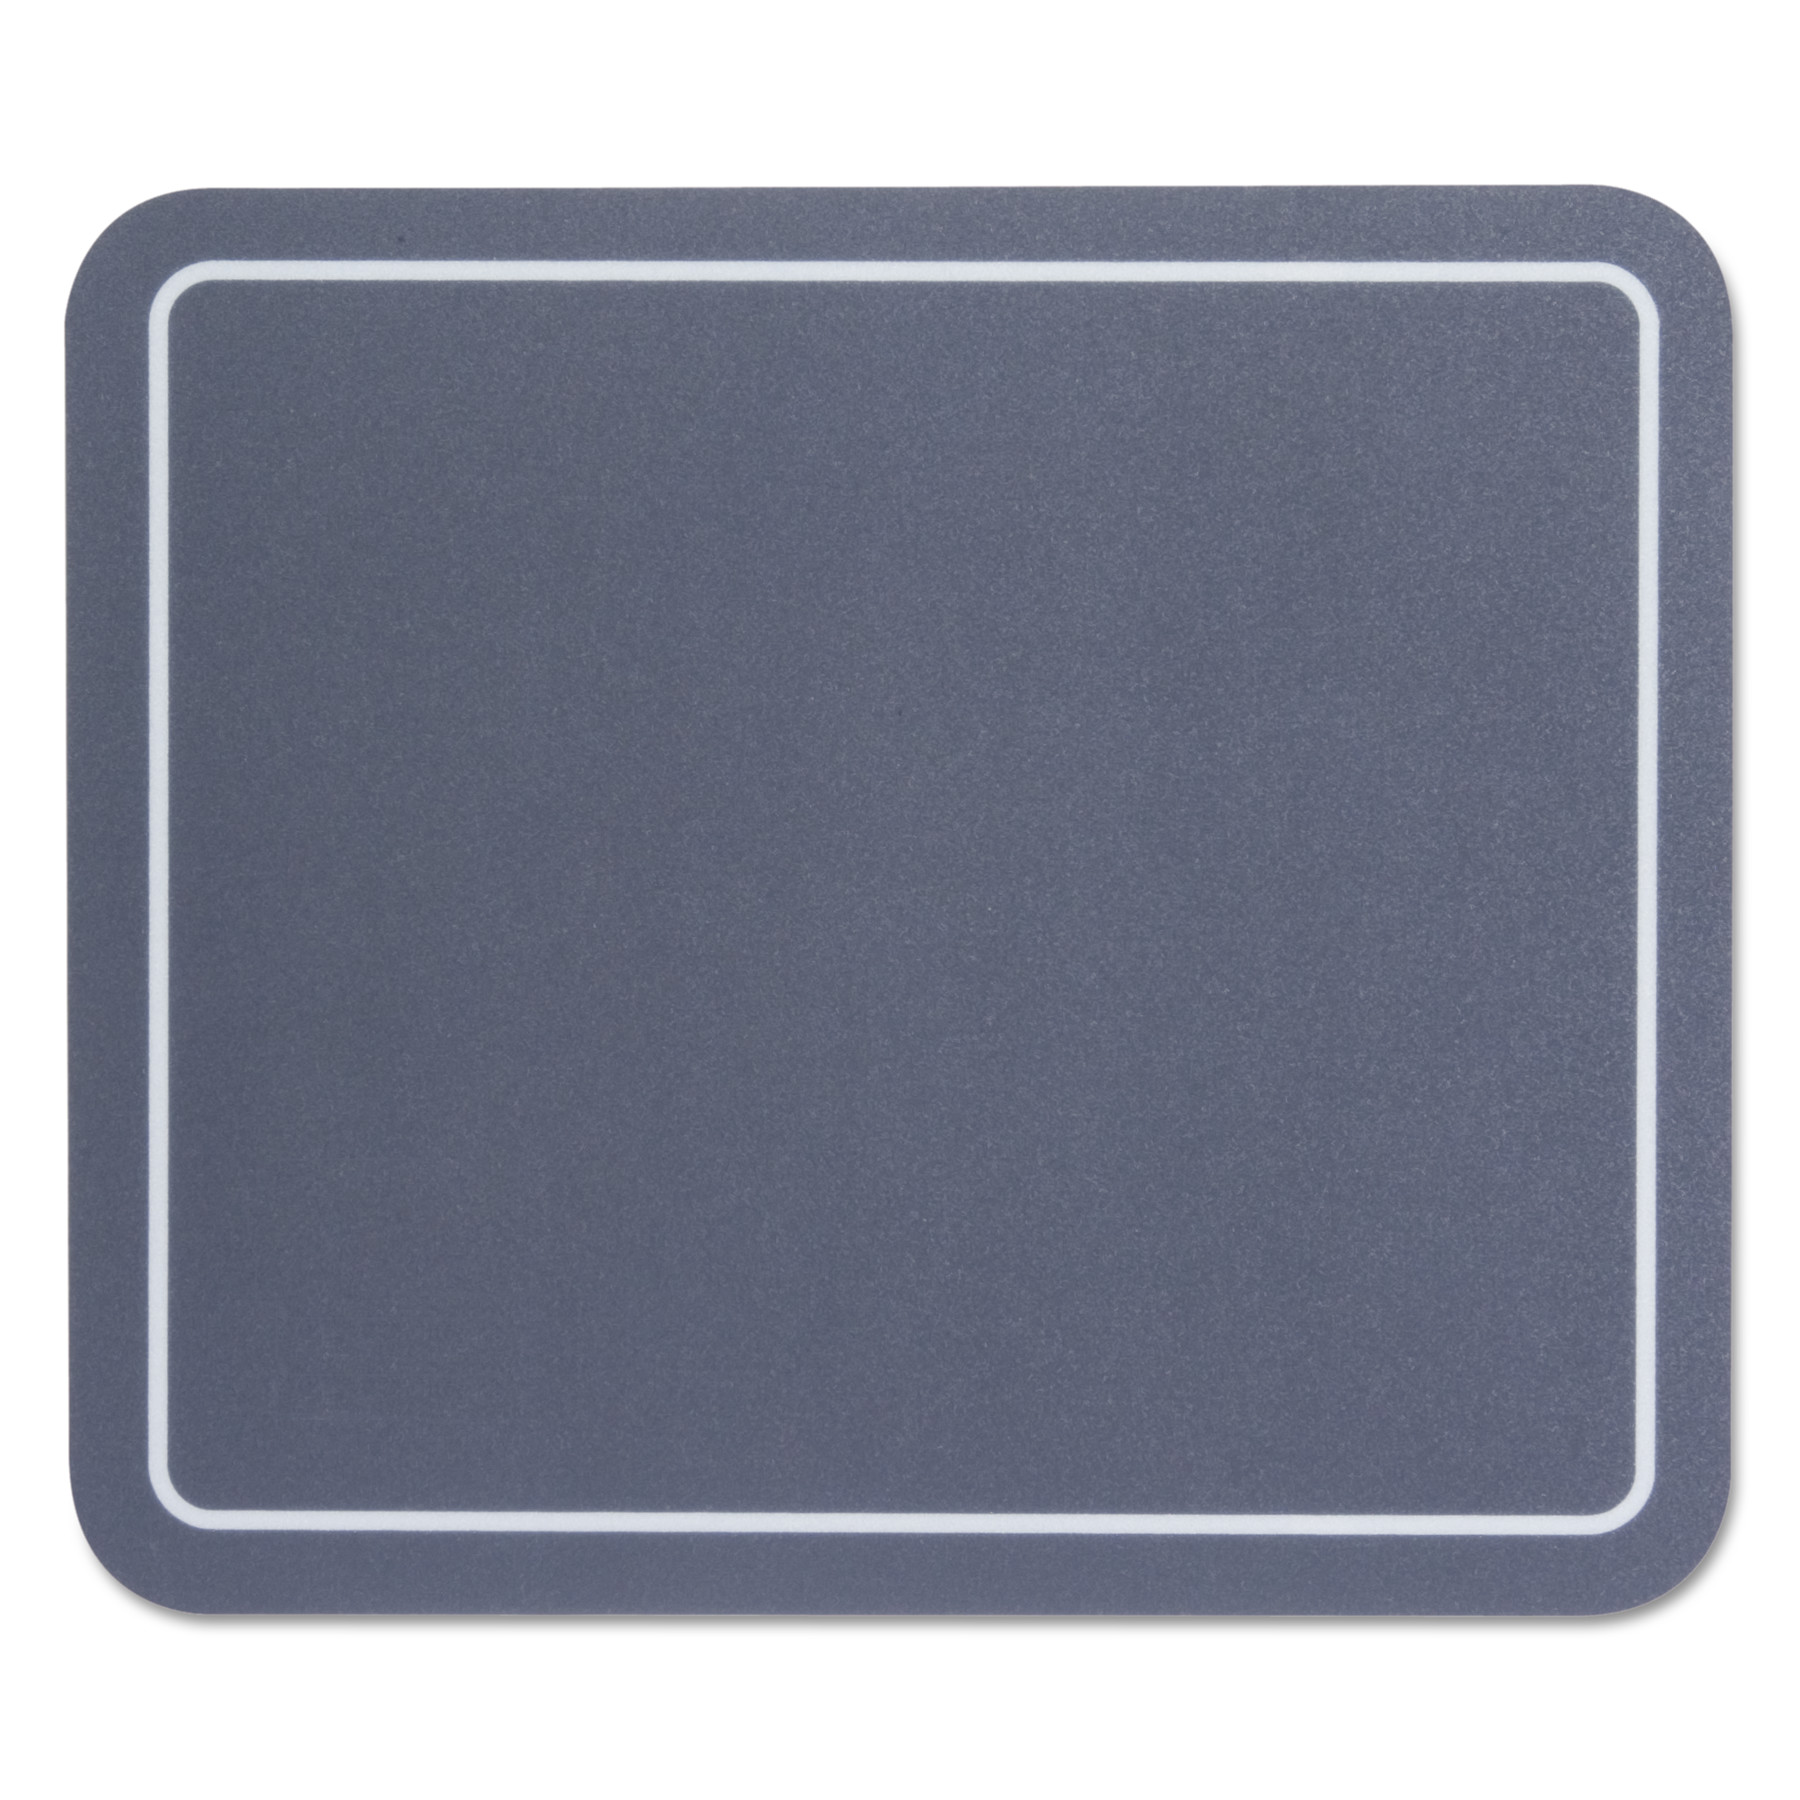 Kelly Computer Supply Optical Mouse Pad, 9 x 7-3/4 x 1/8, Gray